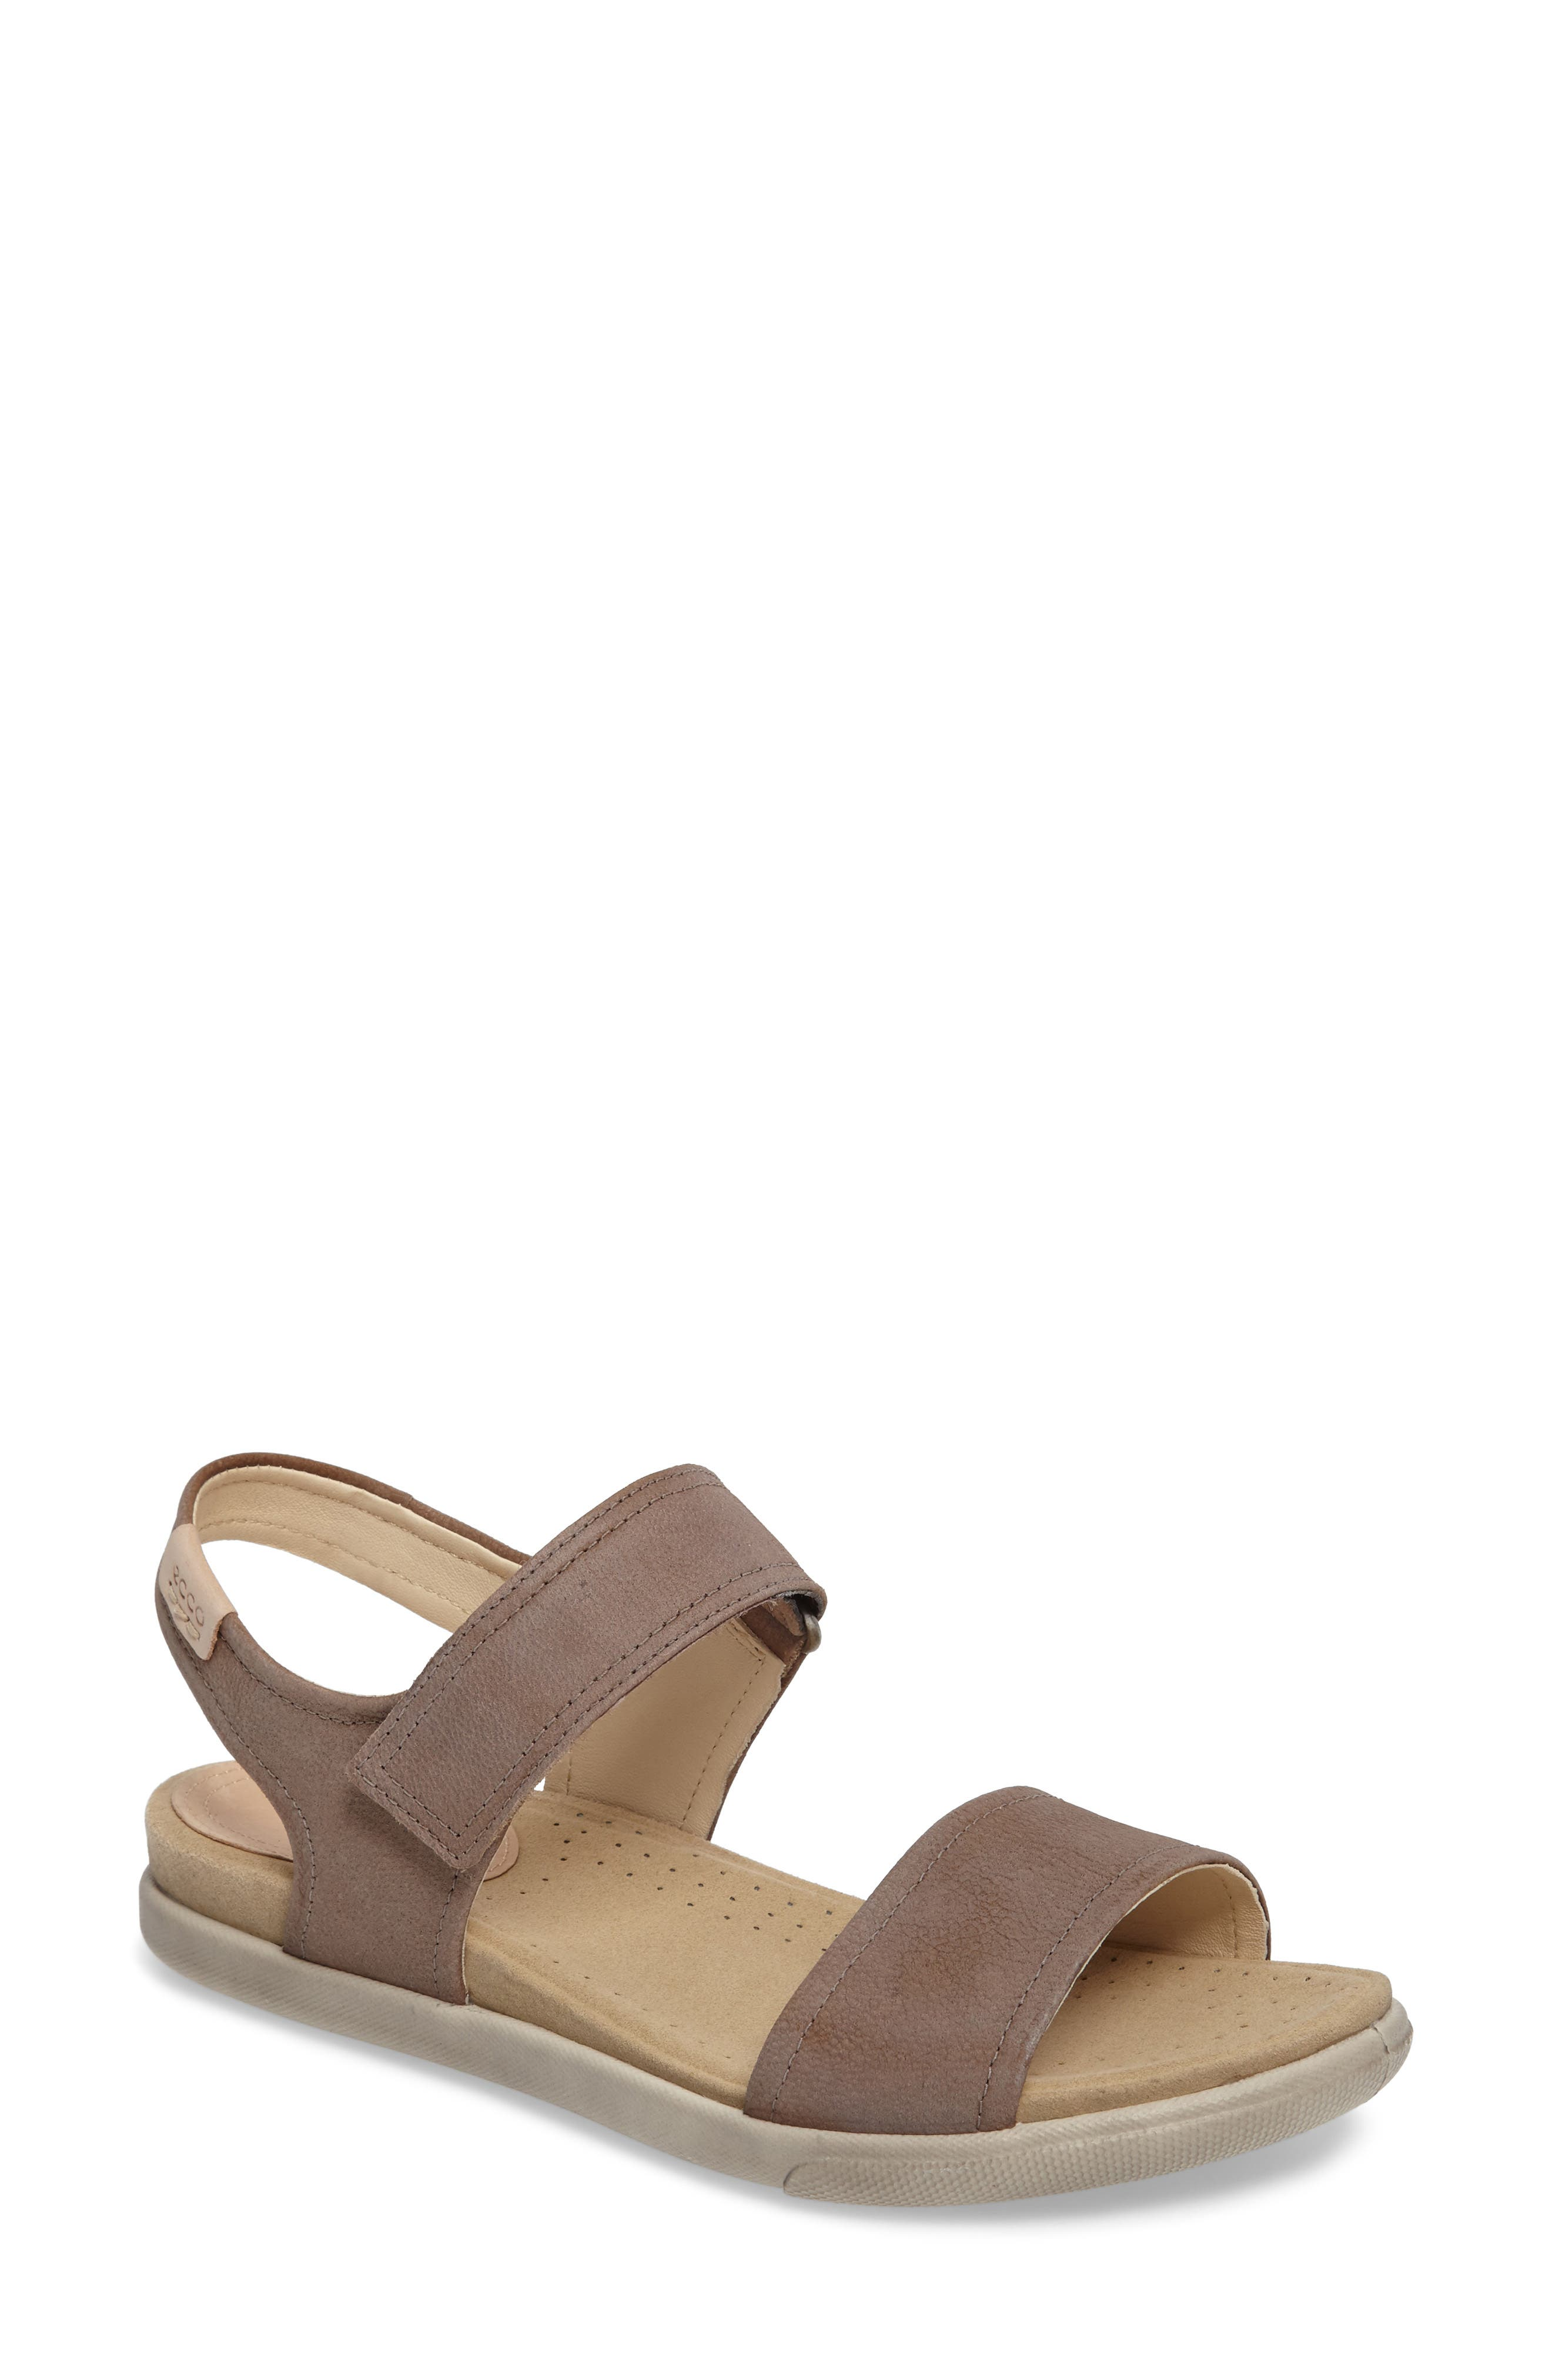 'Damara' Strap Sandal,                         Main,                         color, Birch Leather